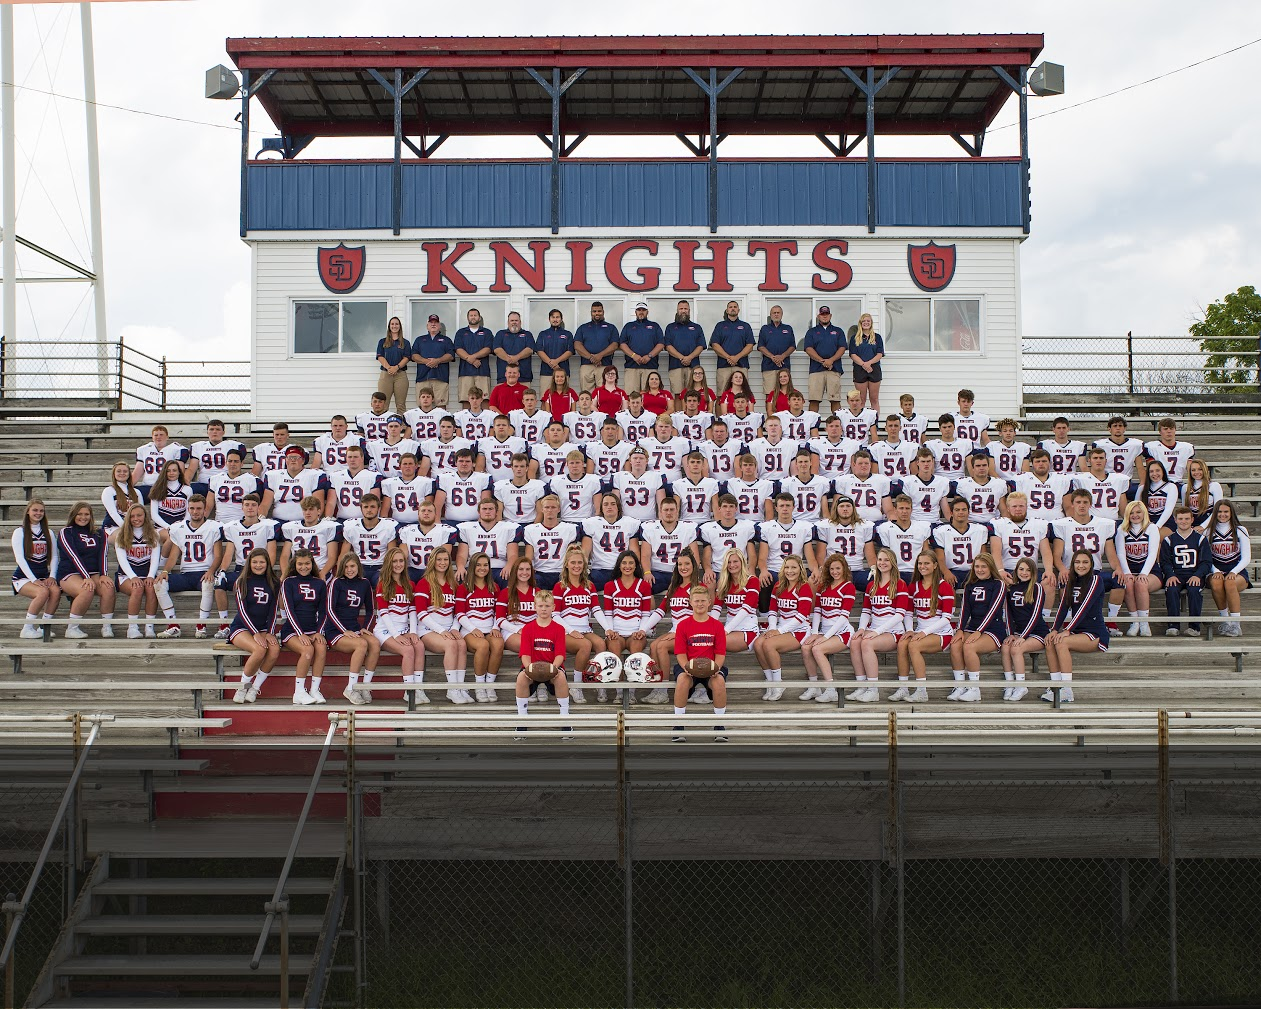 KNIGHTS HOST THE FIRST ROUND OF THE IHSAA CLASS 4A FOOTBALL SECTIONAL #23 THIS FRIDAY